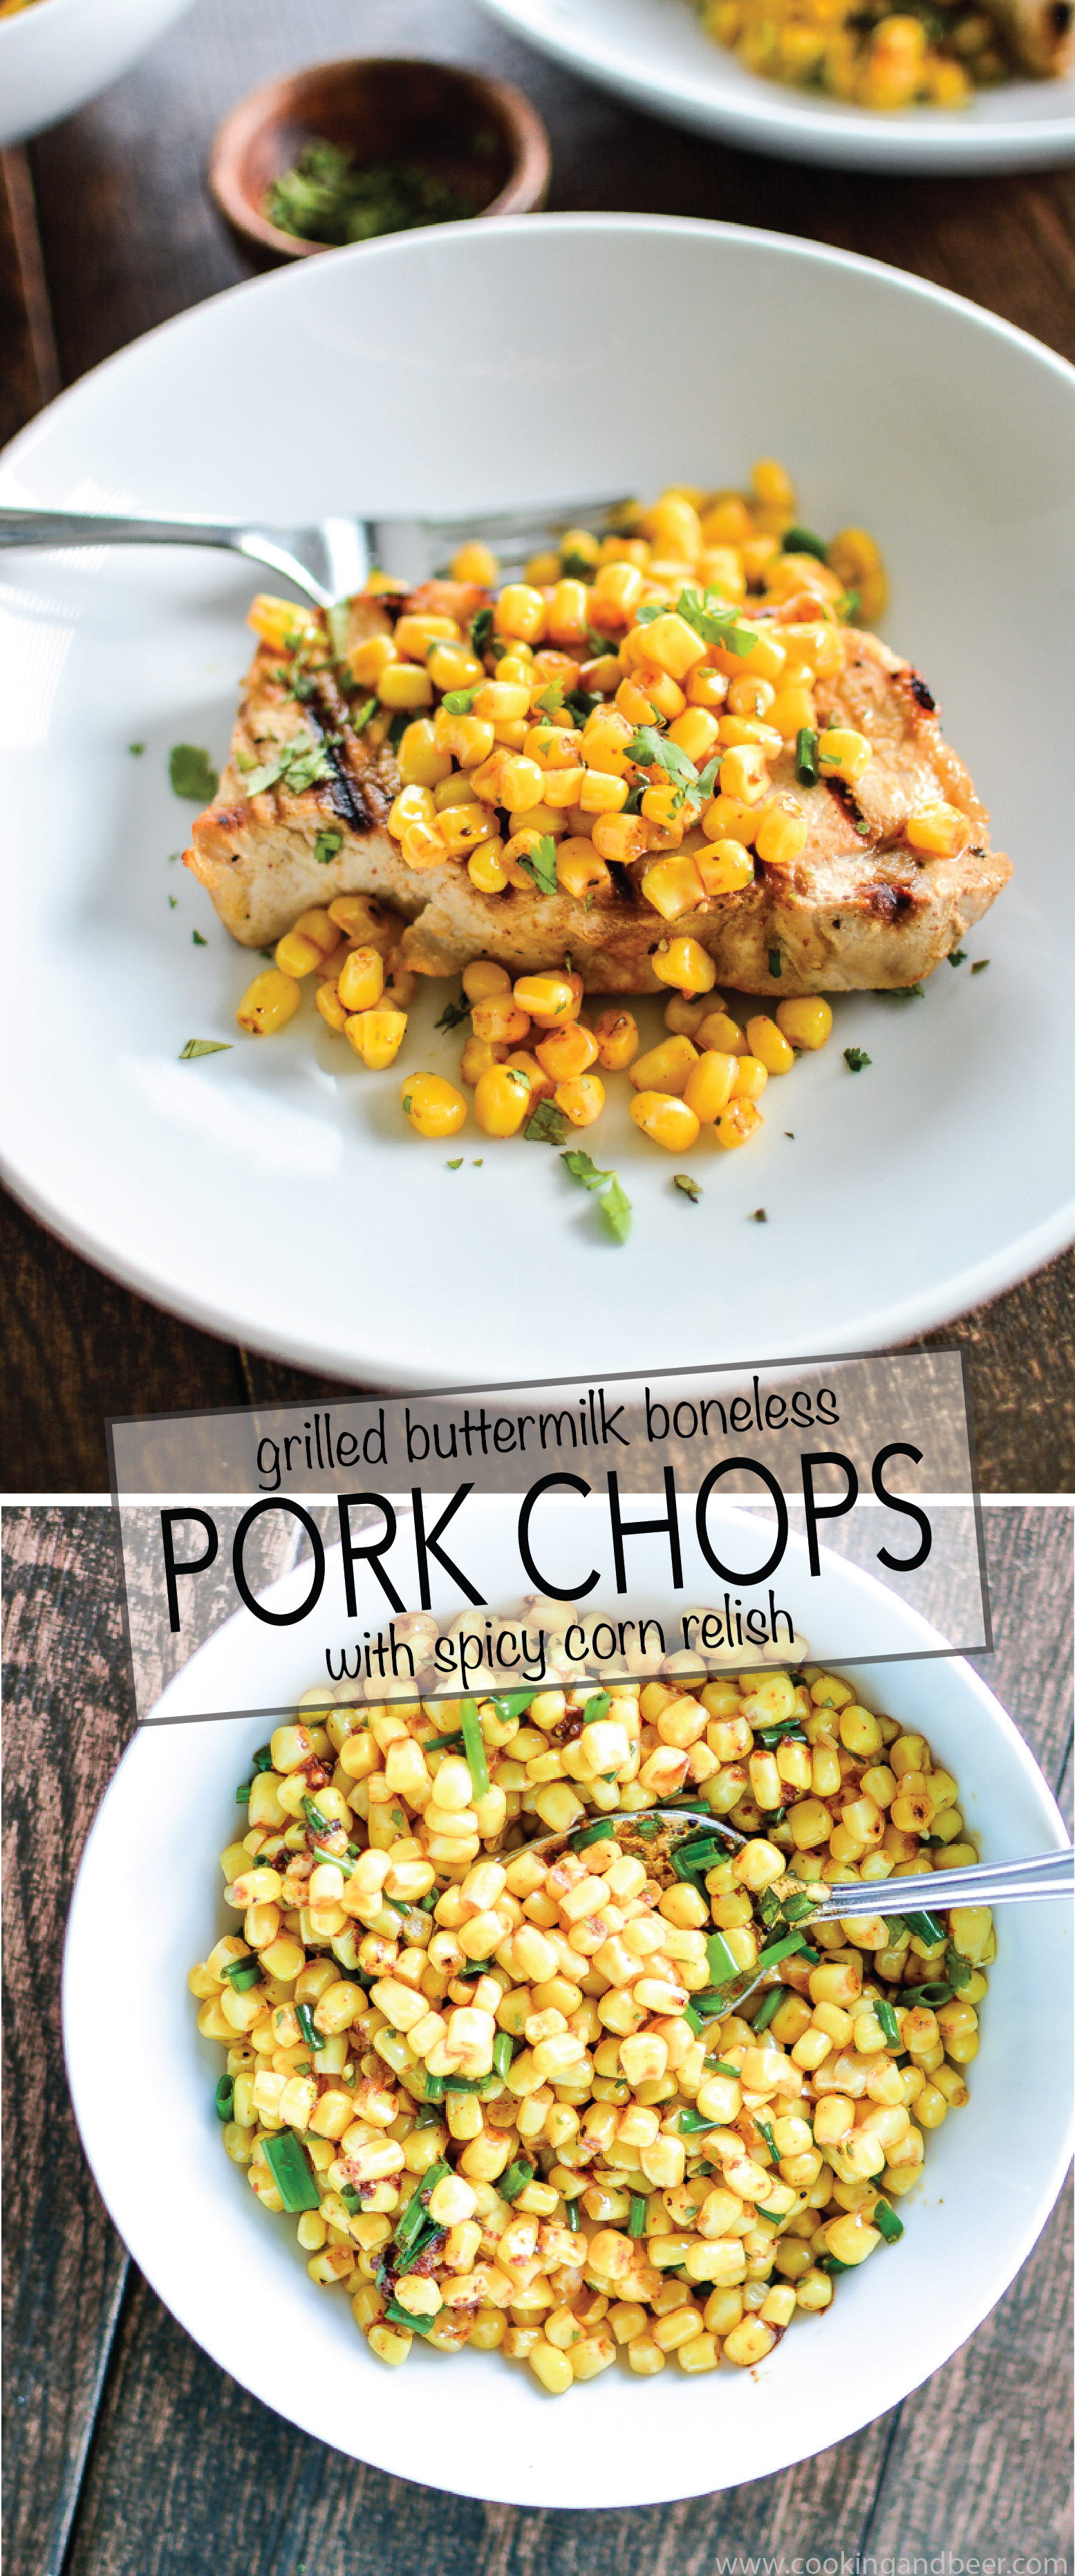 Grilled Buttermilk Boneless Pork Chops with Spicy Corn Relish is a recipe that's the perfect addition to your summer barbecues! | www.cookingandbeer.com